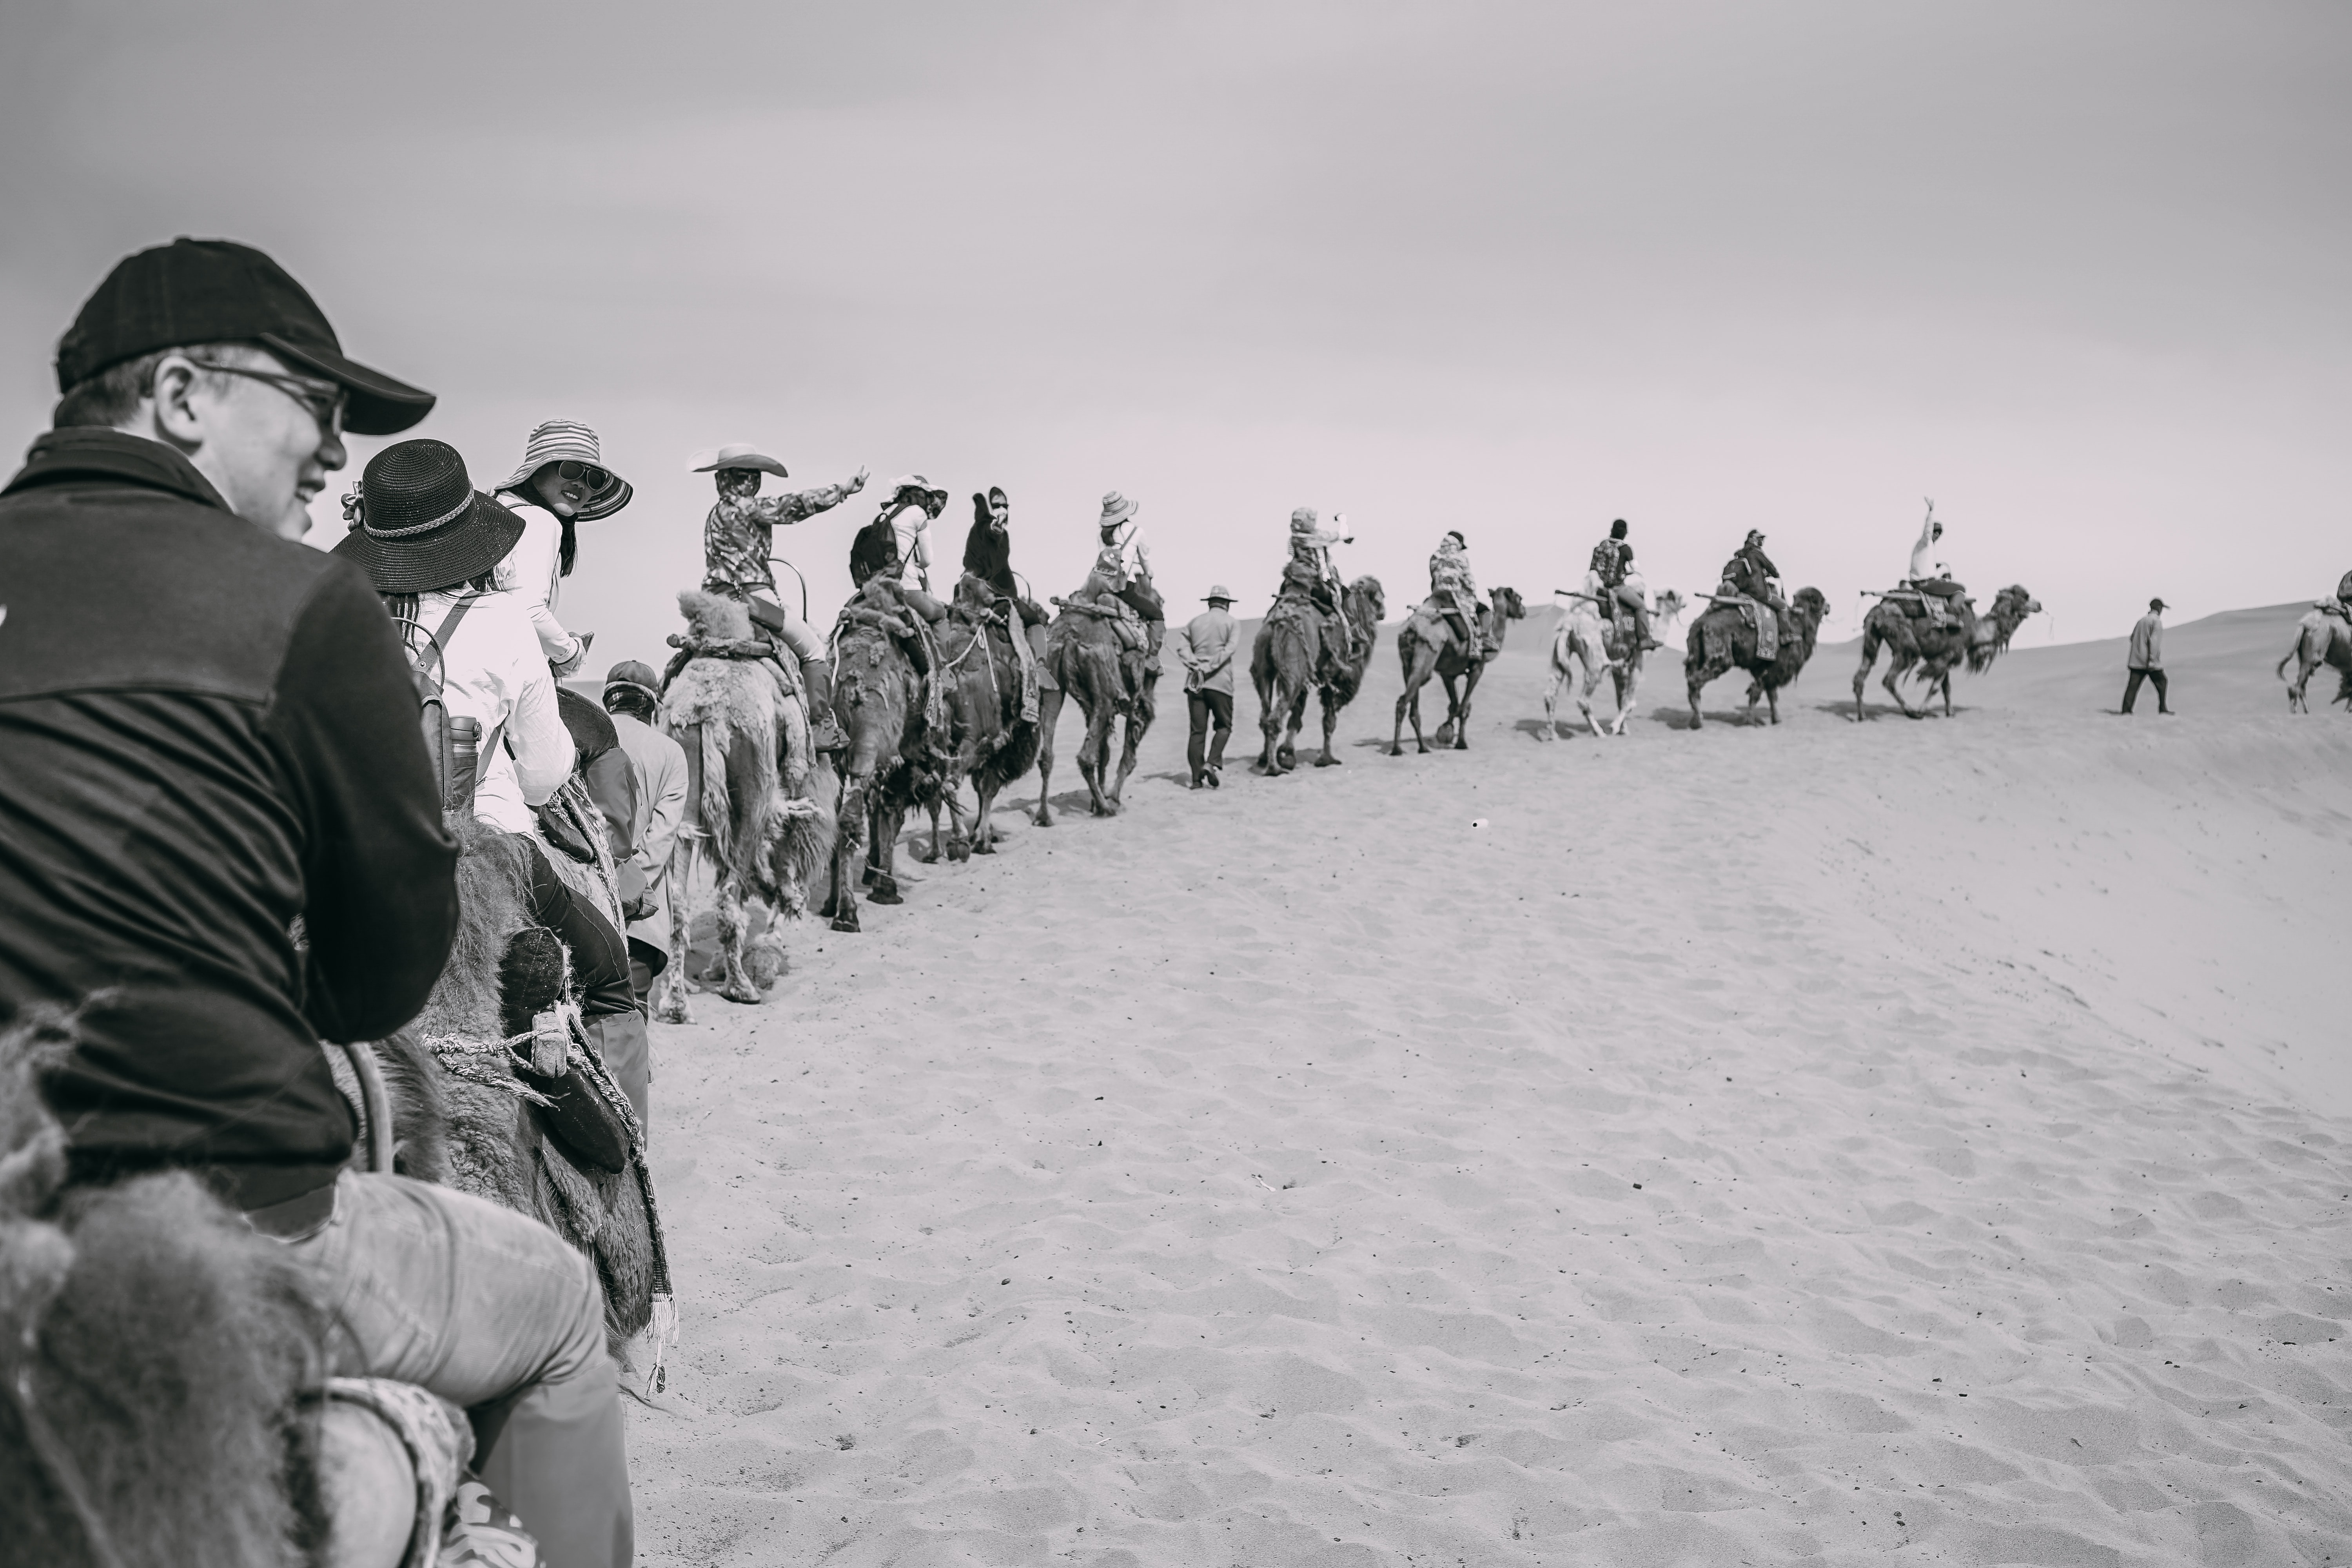 A group of tourists rides a line of camels in the desert with guides on foot